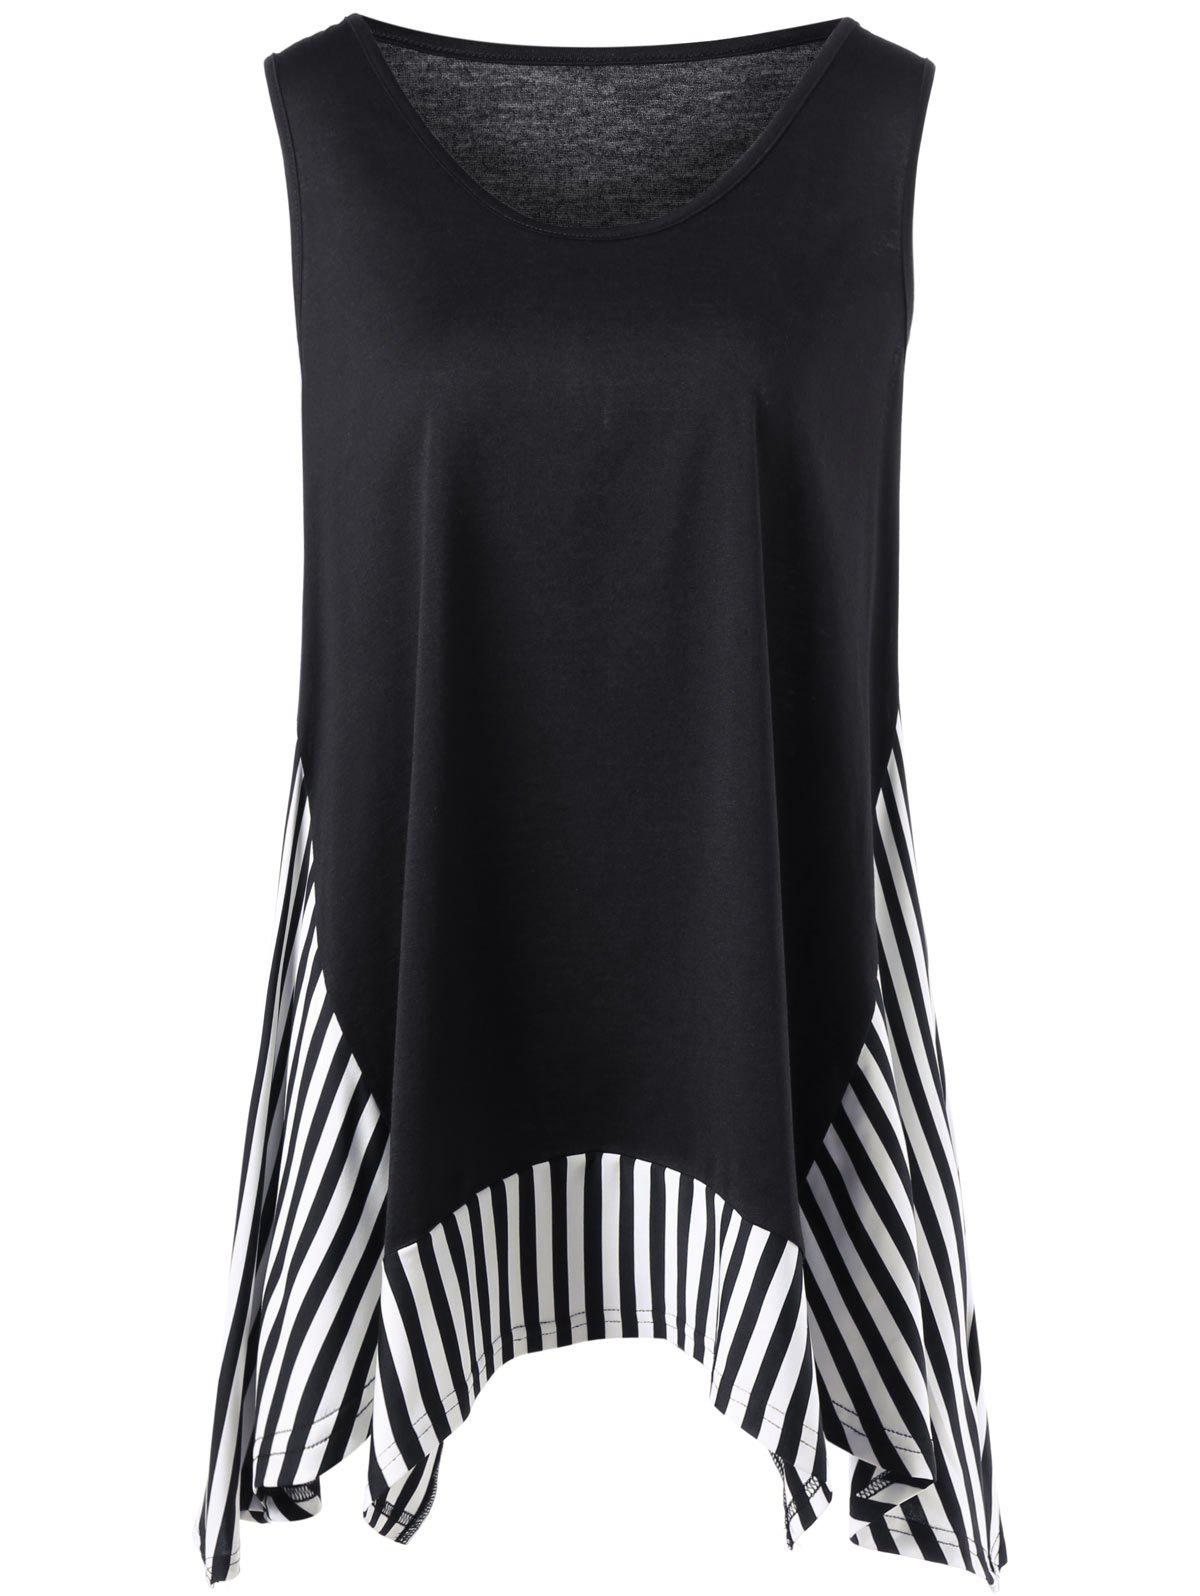 Plus Size Striped Trim Sleeveless T-shirt - BLACK XL